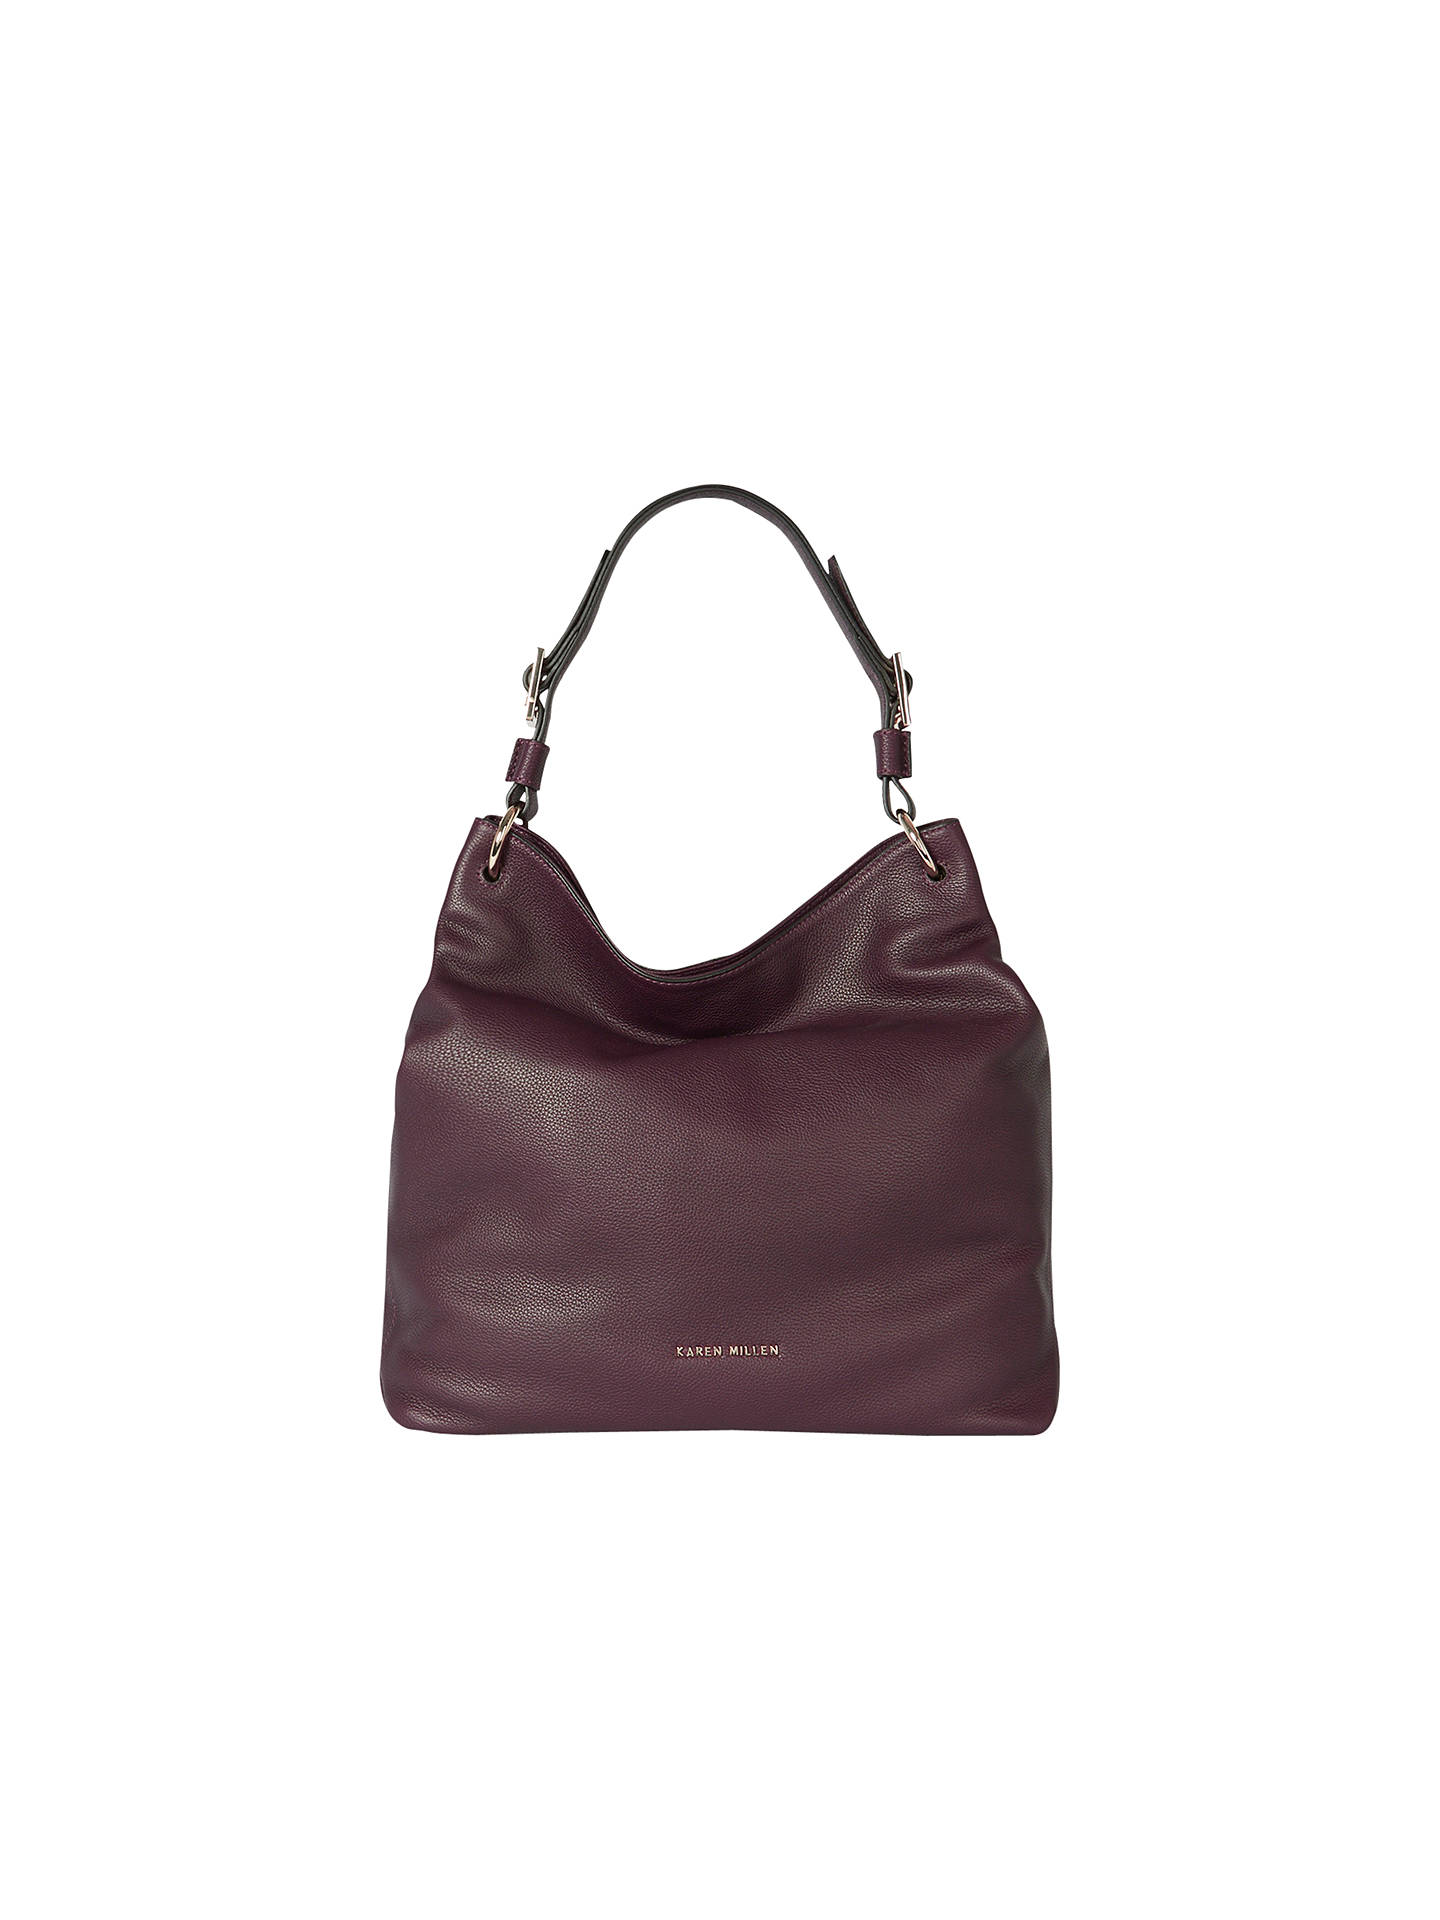 Karen Millen Soft Leather Sling Bag Aubergine Online At Johnlewis